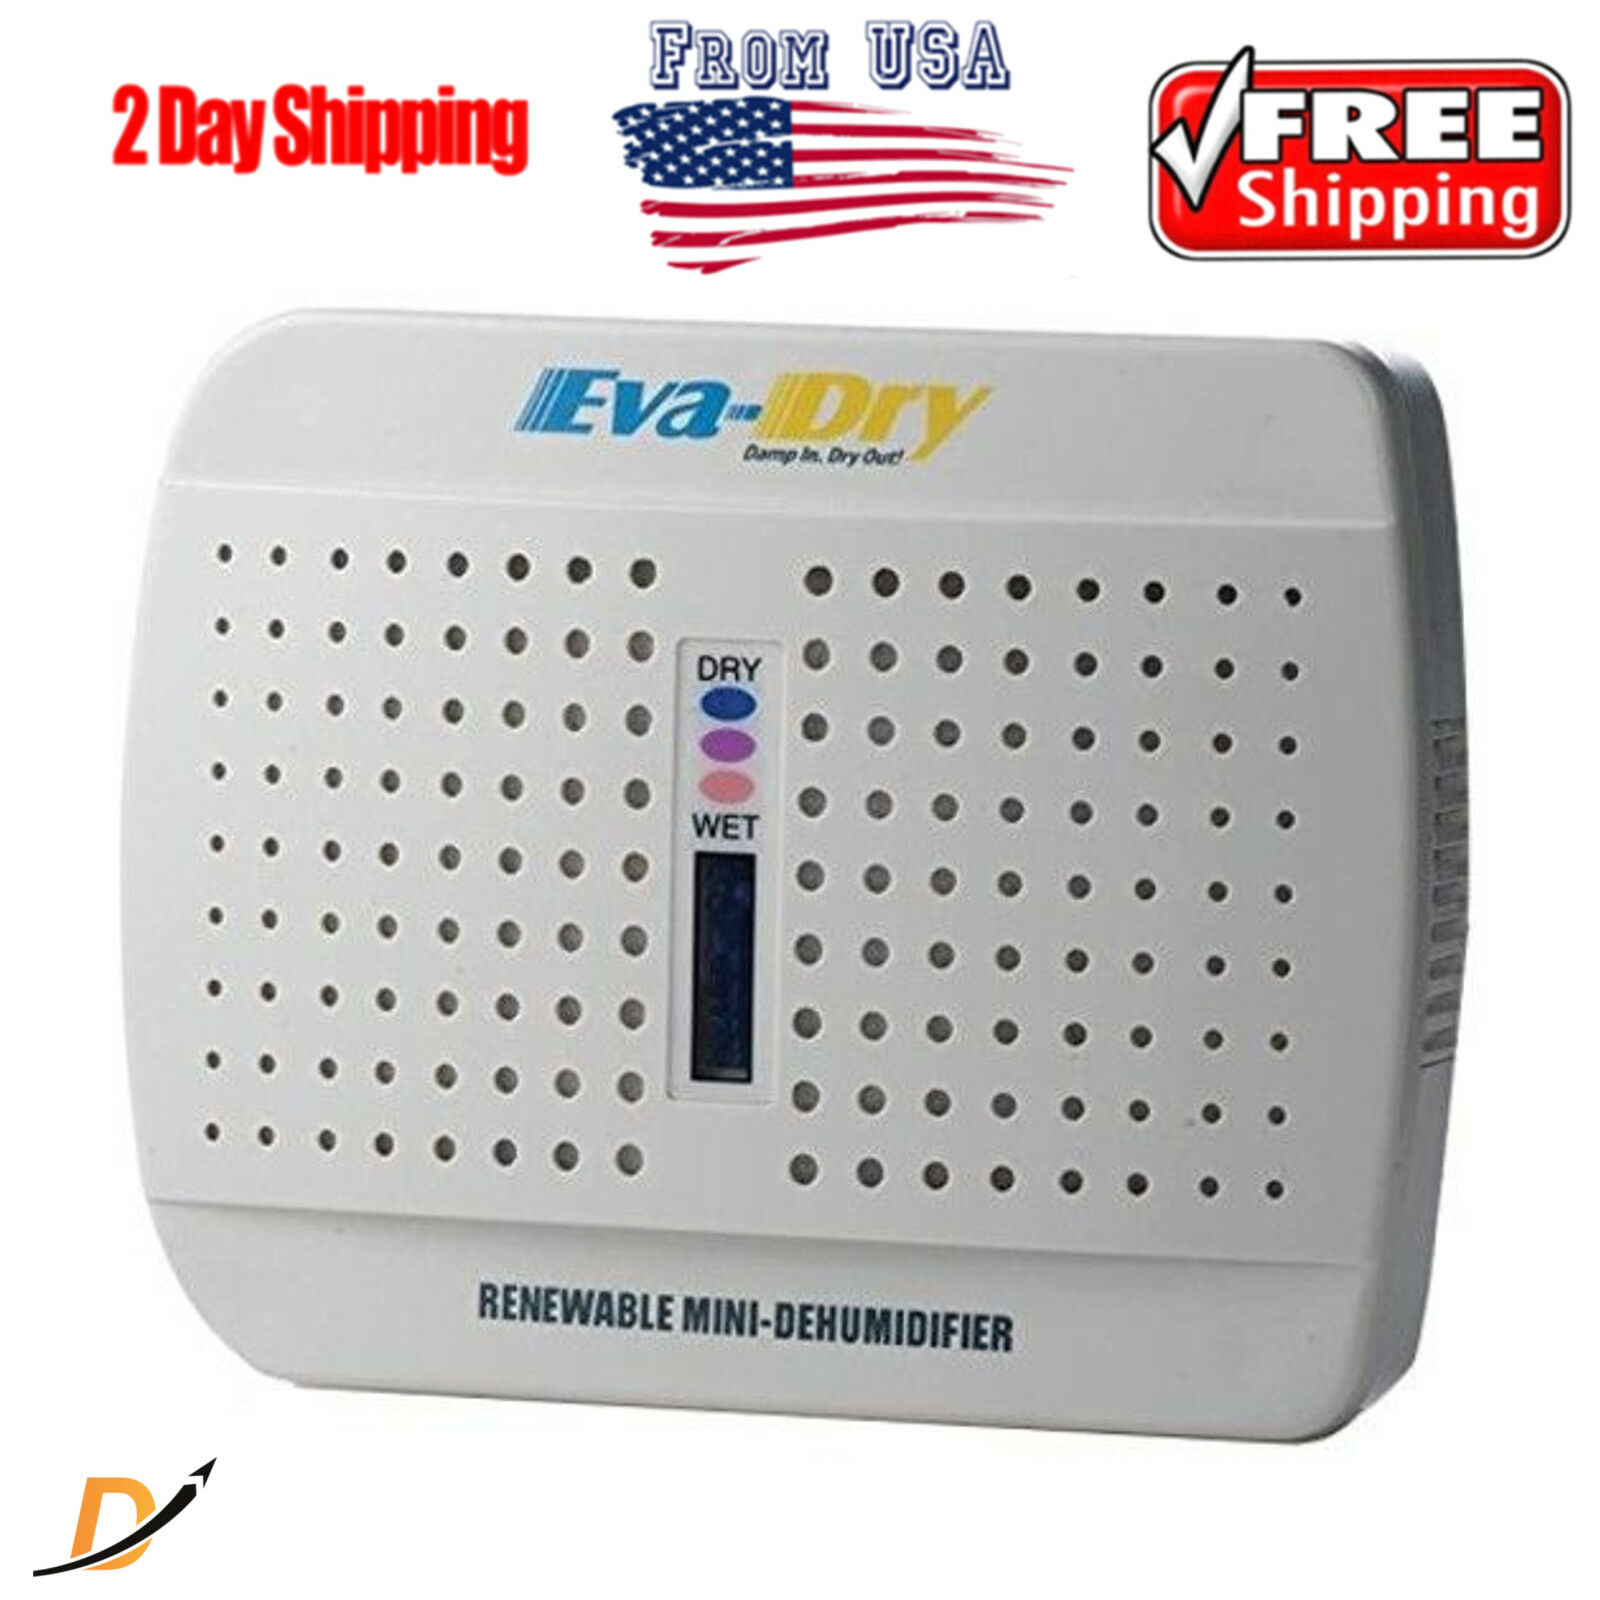 dehumidifier for hose basements home bathroom gun